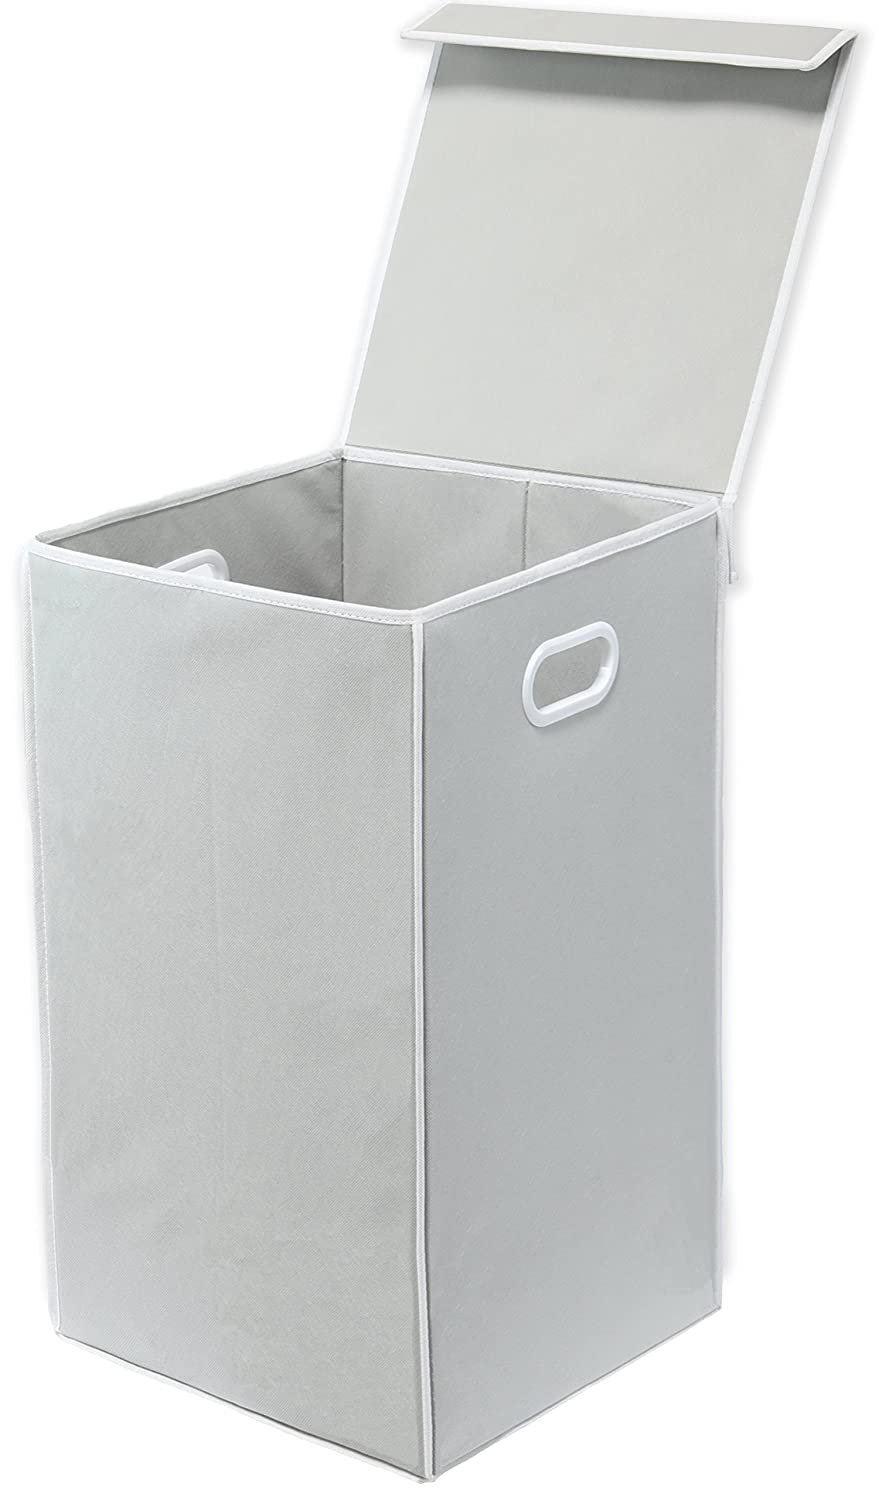 Simple Houseware Foldable Laundry Hamper Basket with Lid, Grey